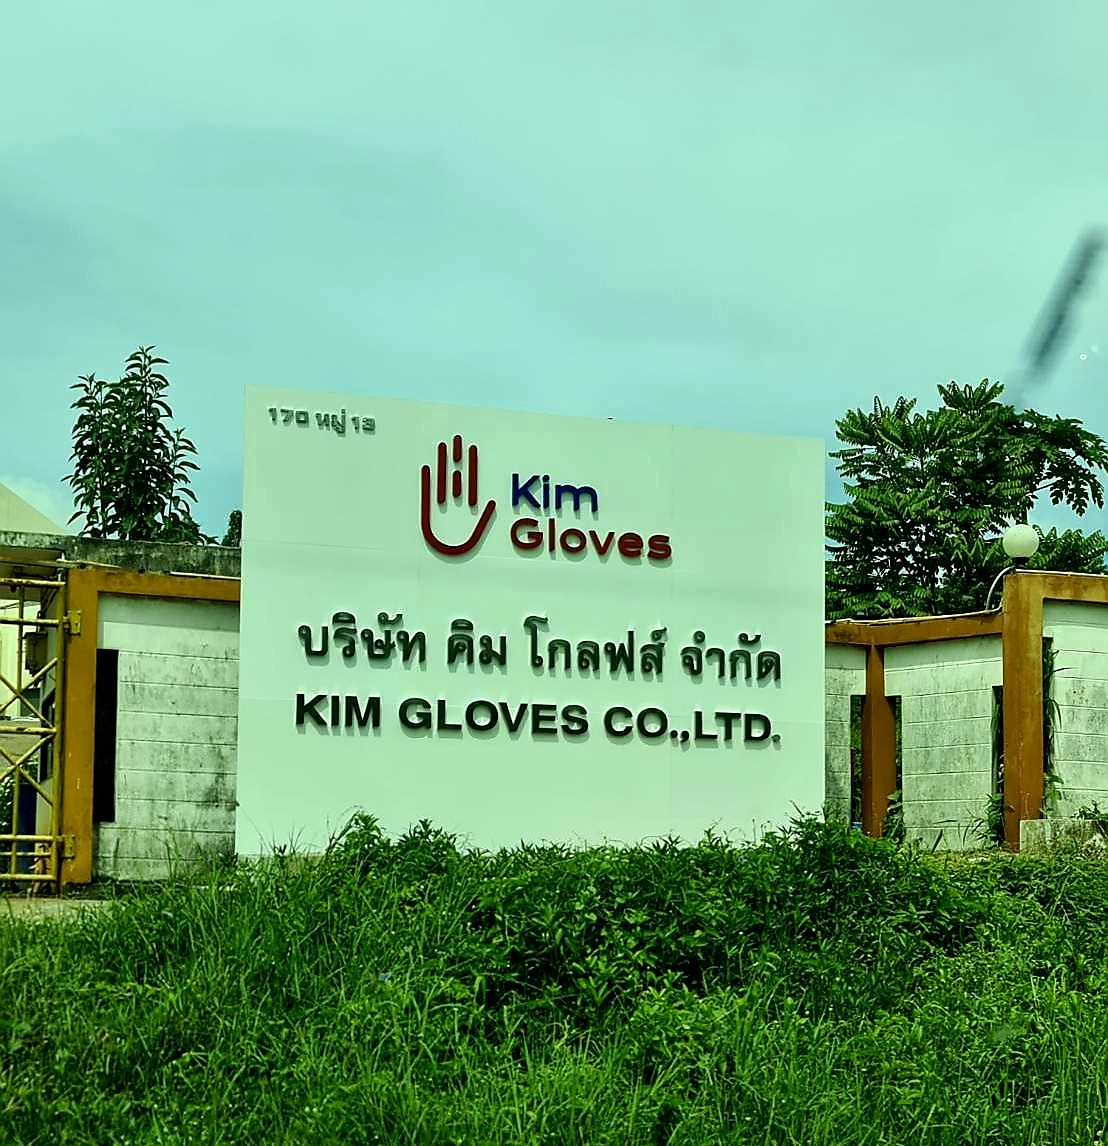 Entrance Sign to Kim Gloves Factory